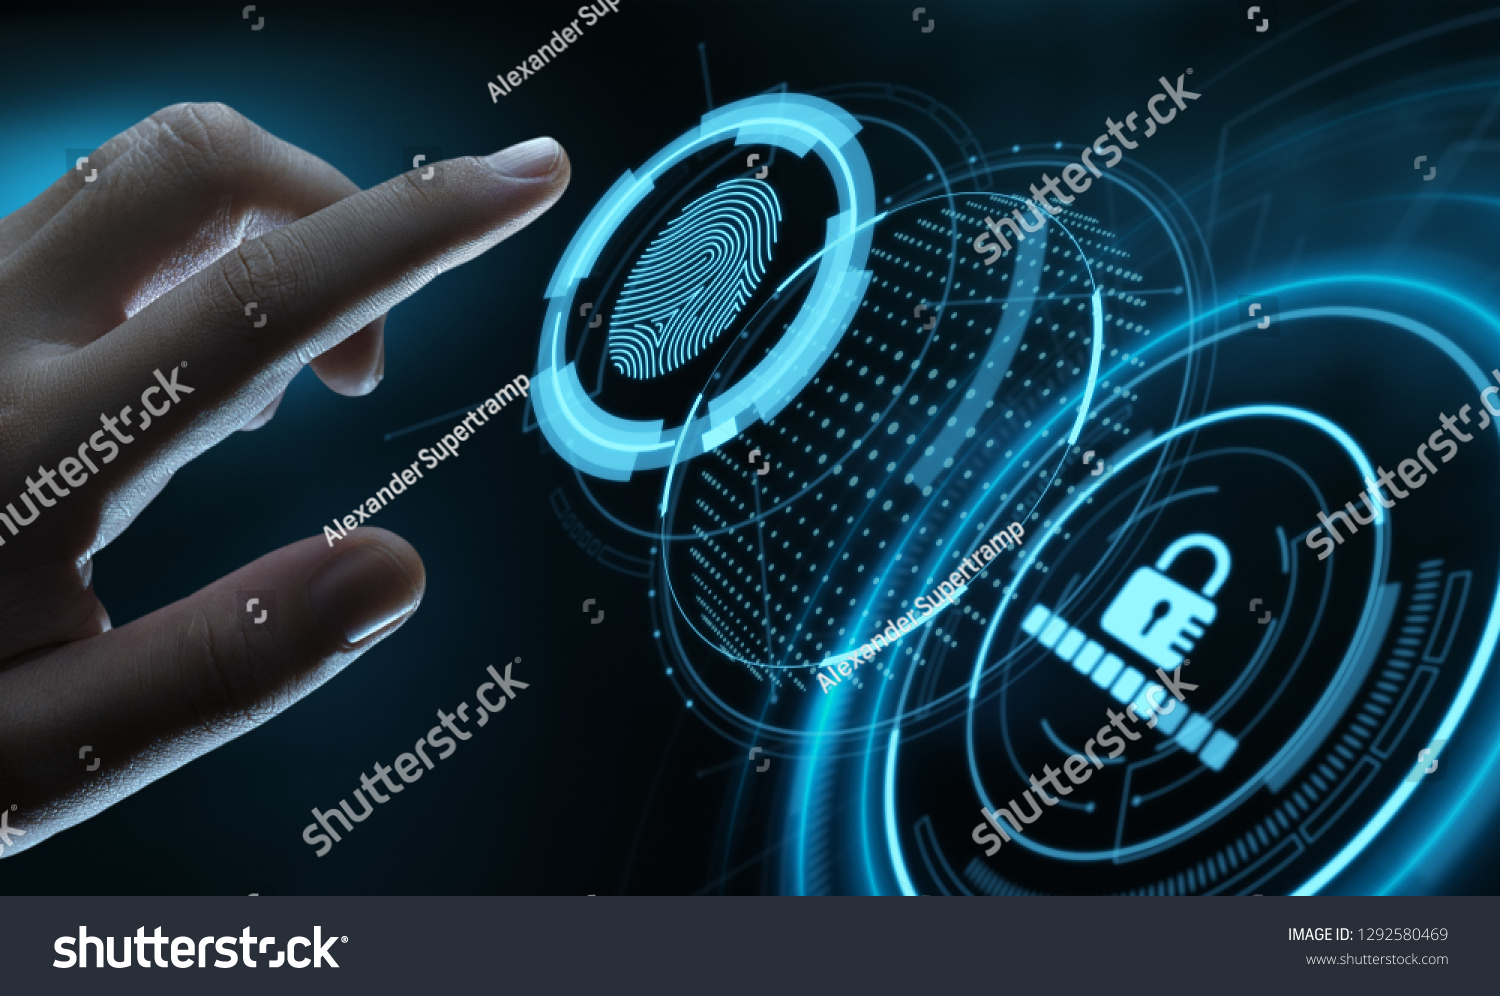 Fingerprint scan provides security access with biometrics identification. Business Technology Safety Internet Concept. #1292580469